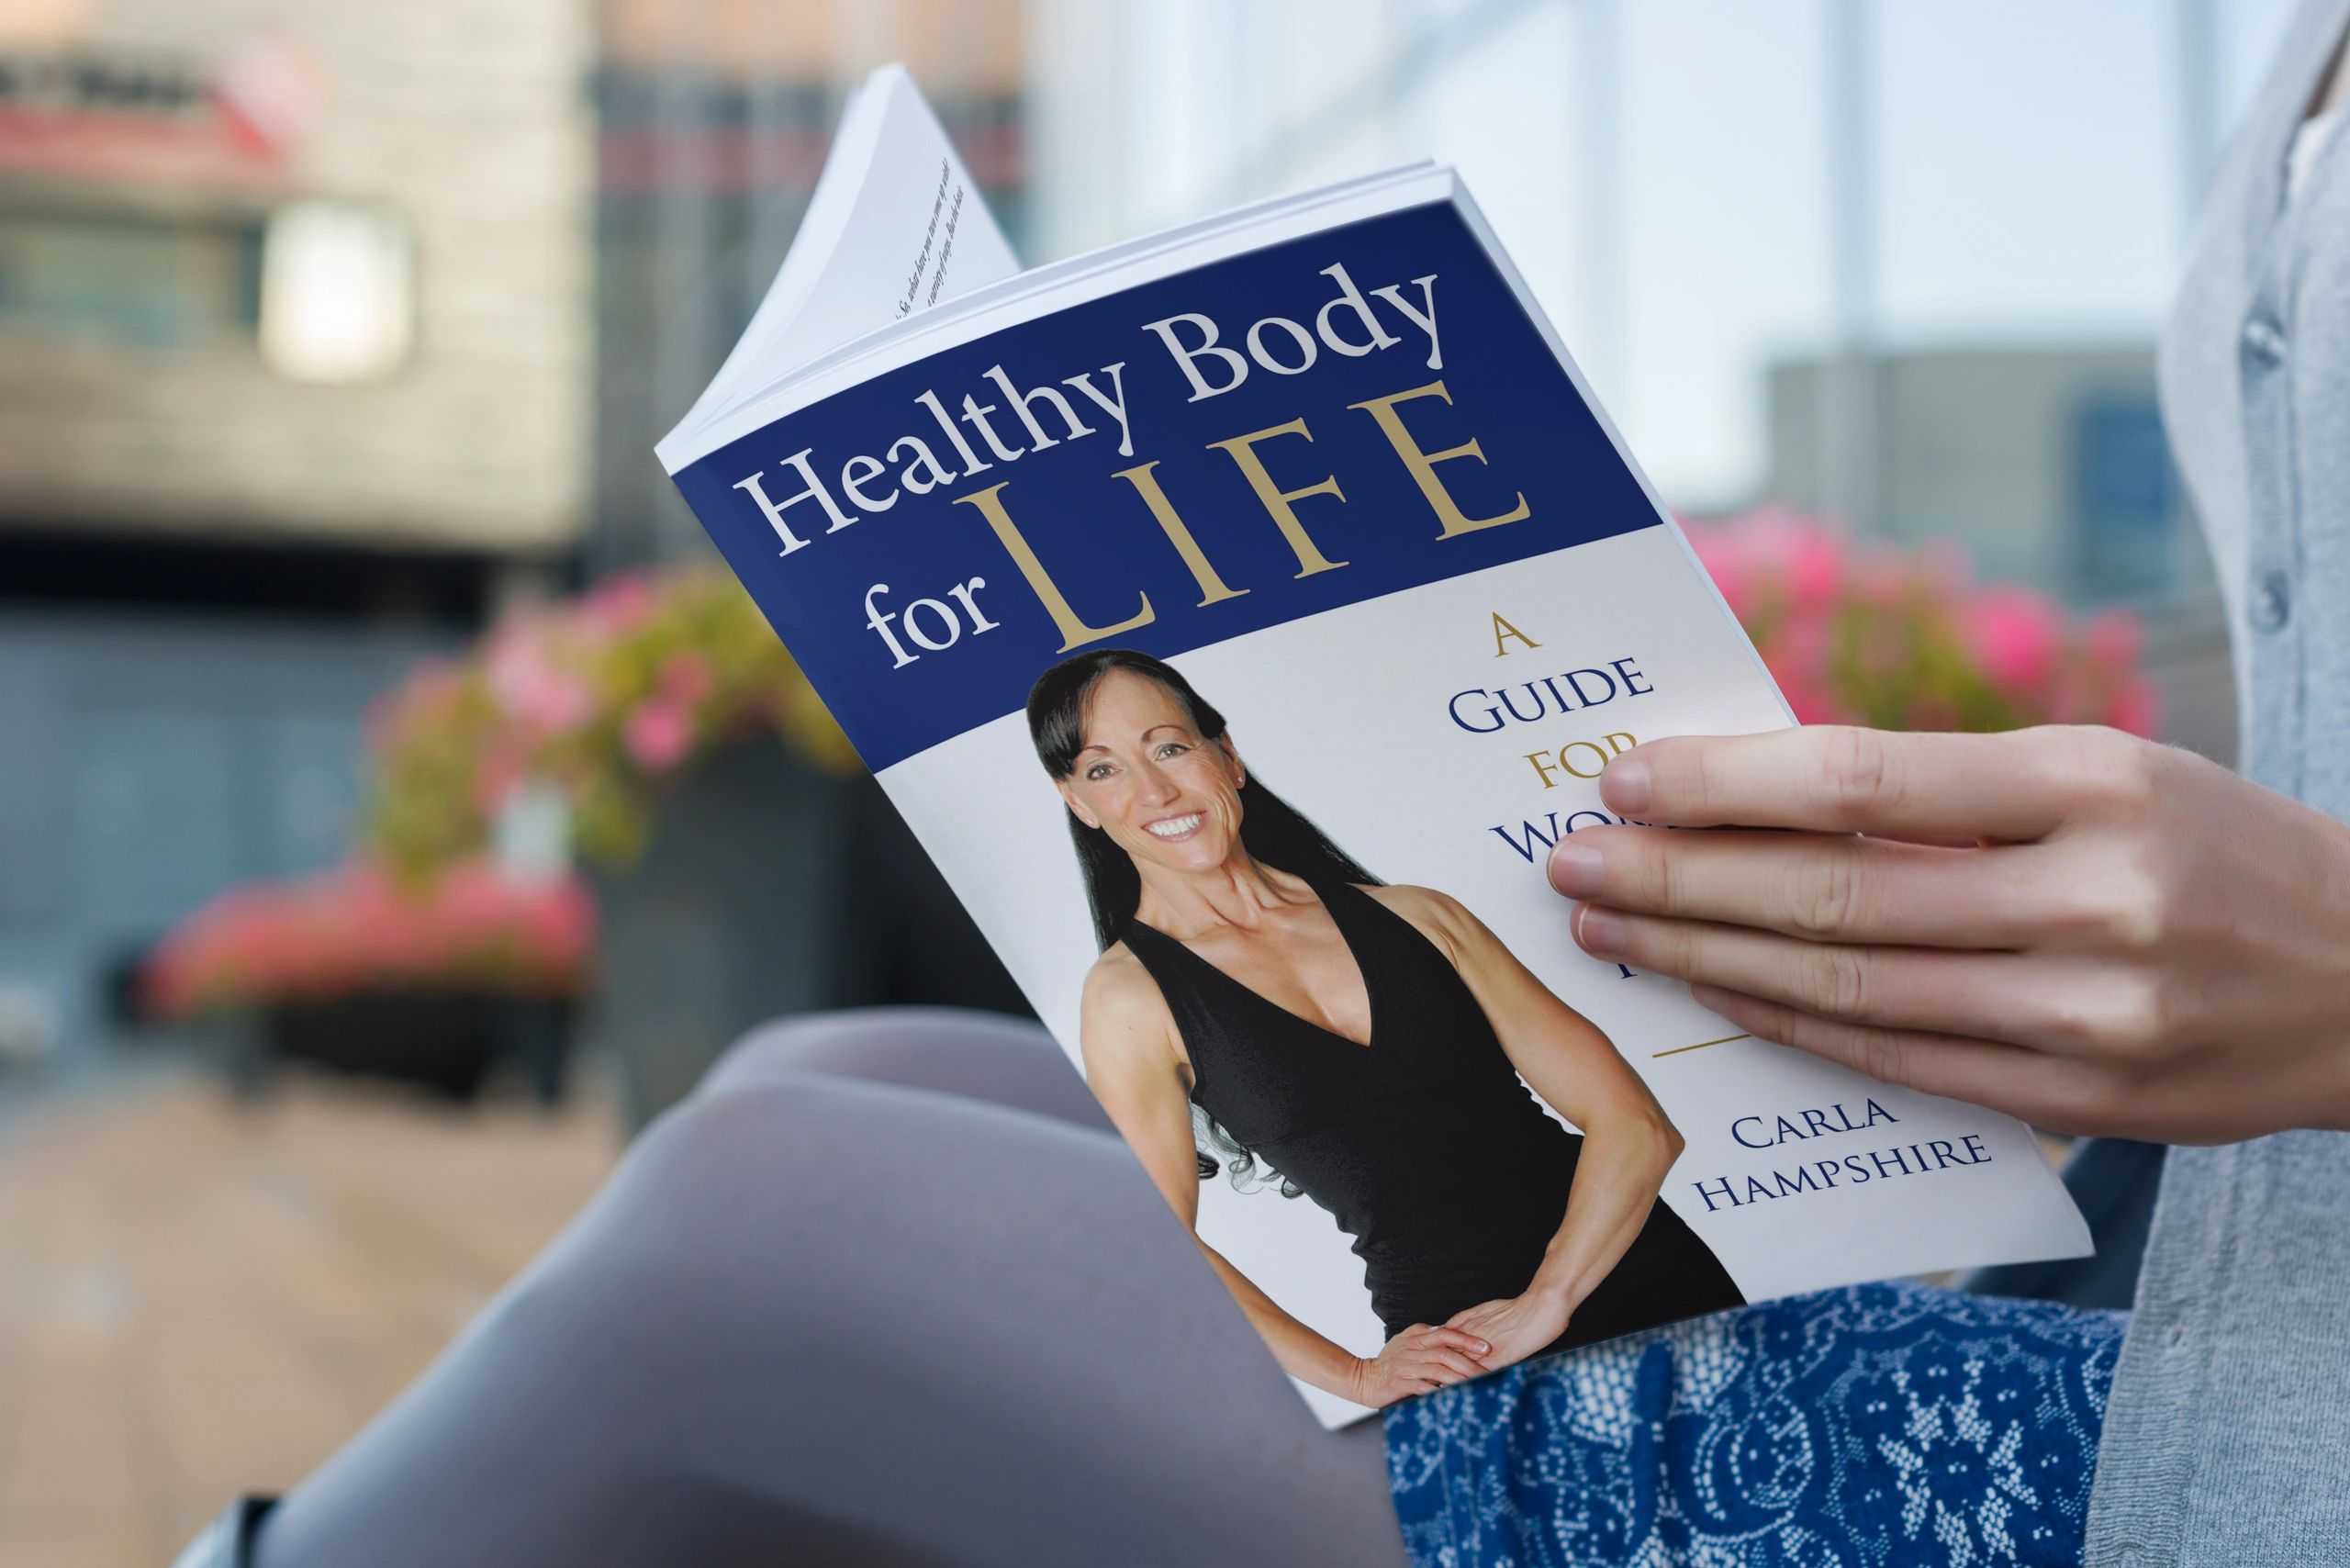 woman holding a health book for women over 40